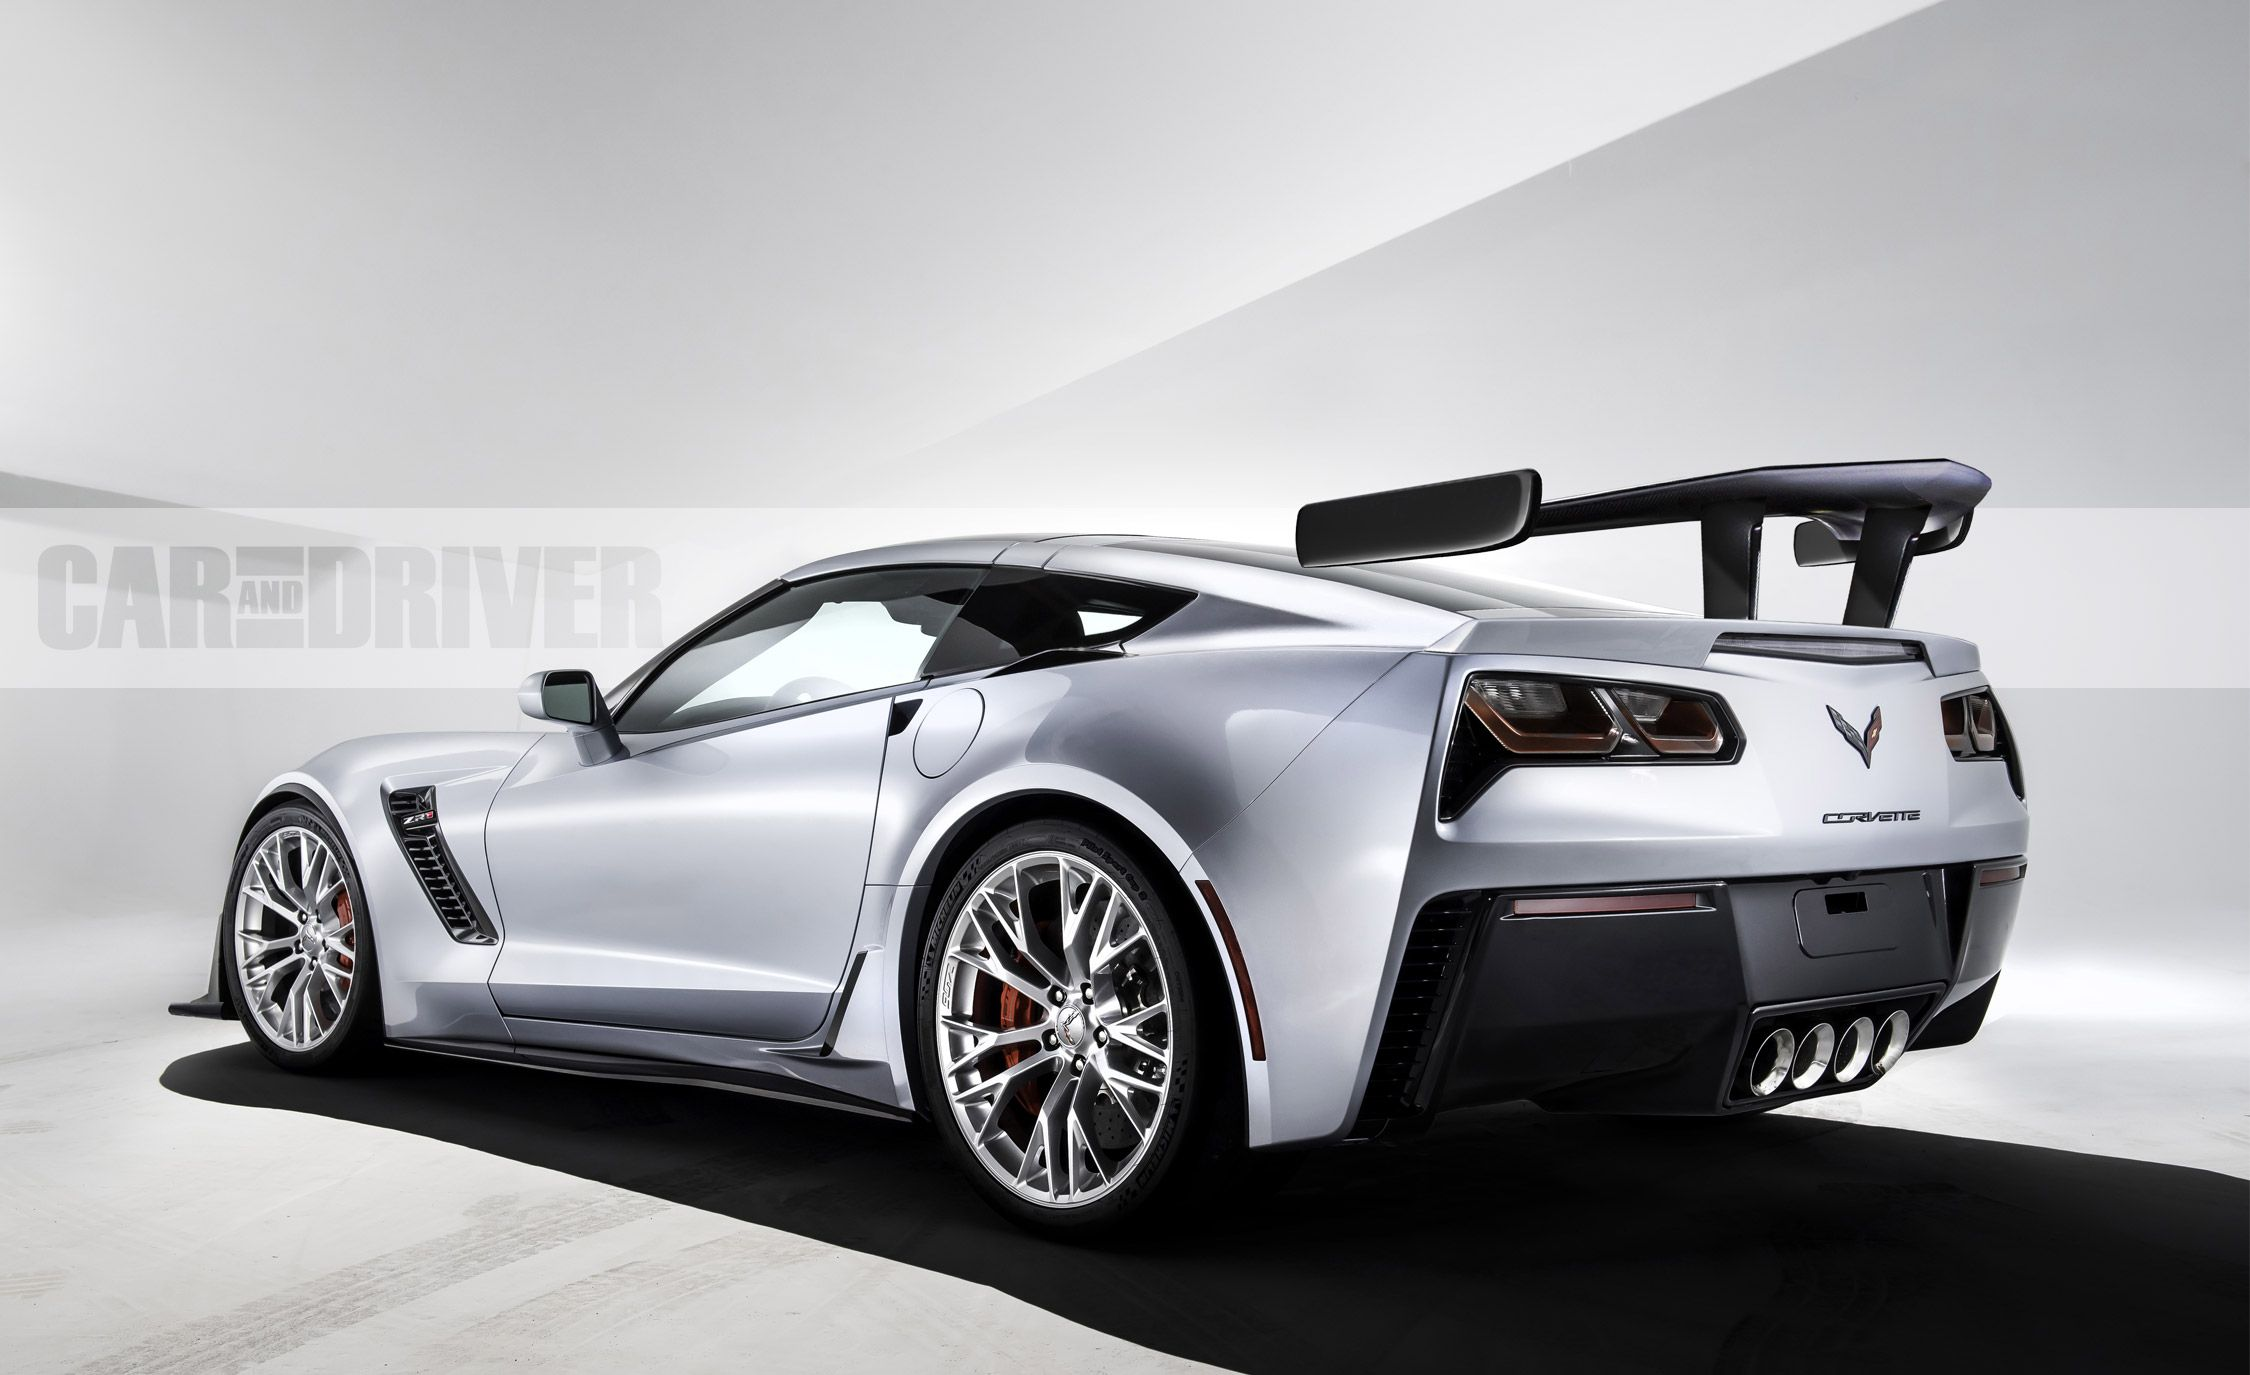 The 2019 Chevrolet Corvette Zr1 Is A Car Worth Waiting For Feature